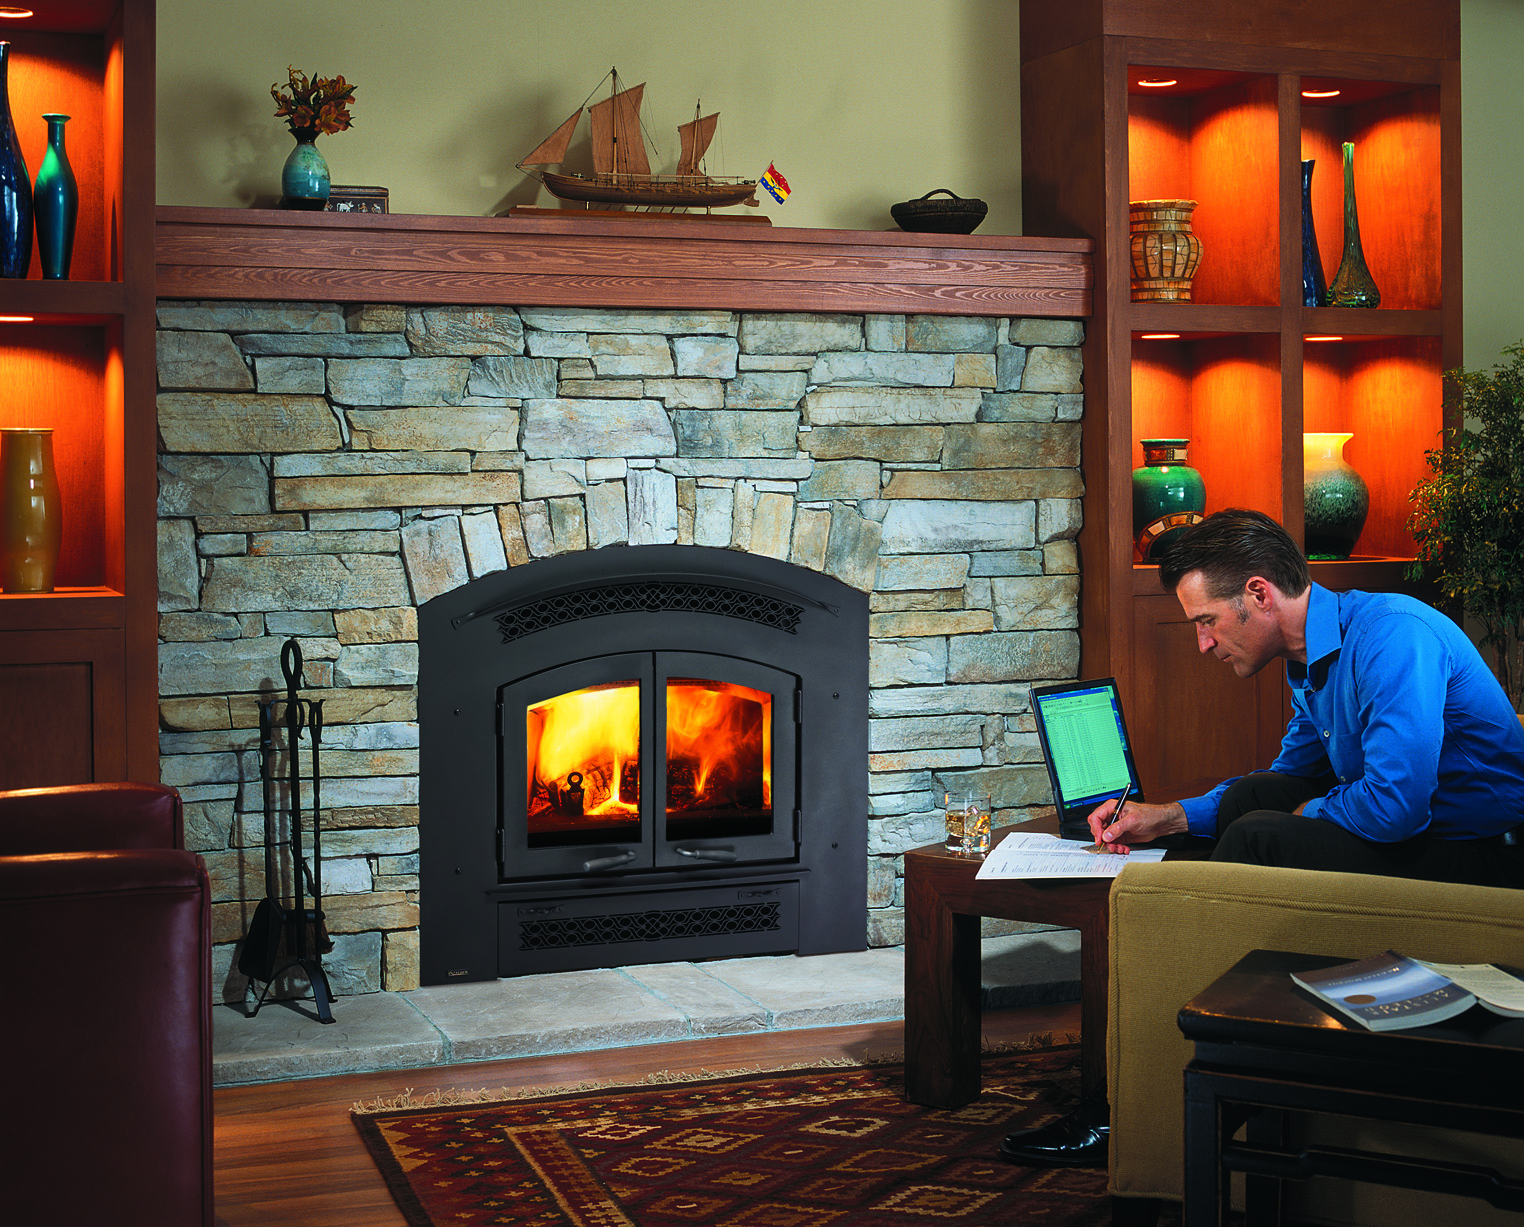 Man working in front of fire place